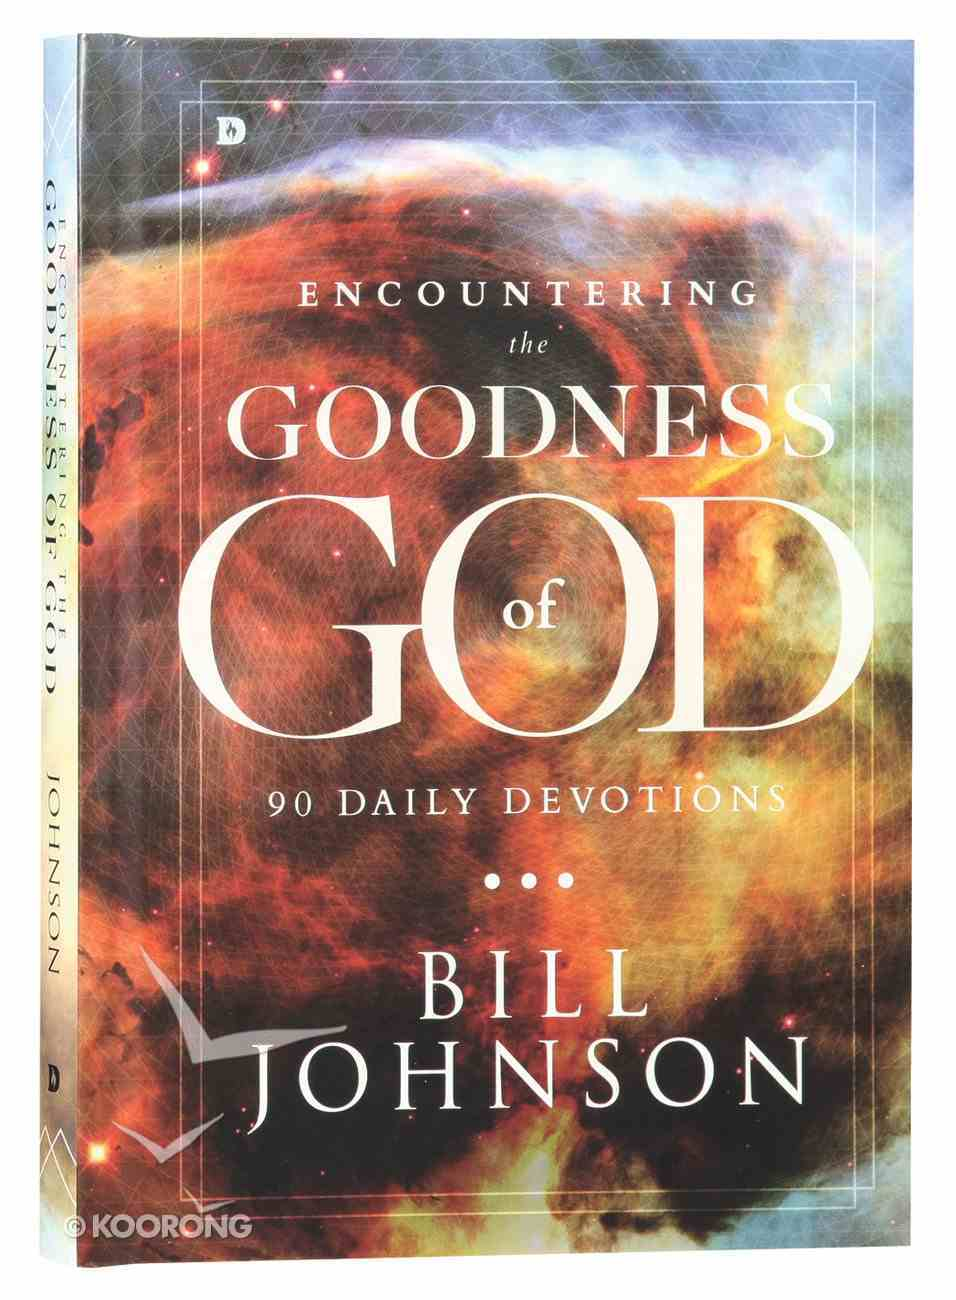 Encountering the Goodness of God: 90 Daily Devotions Hardback